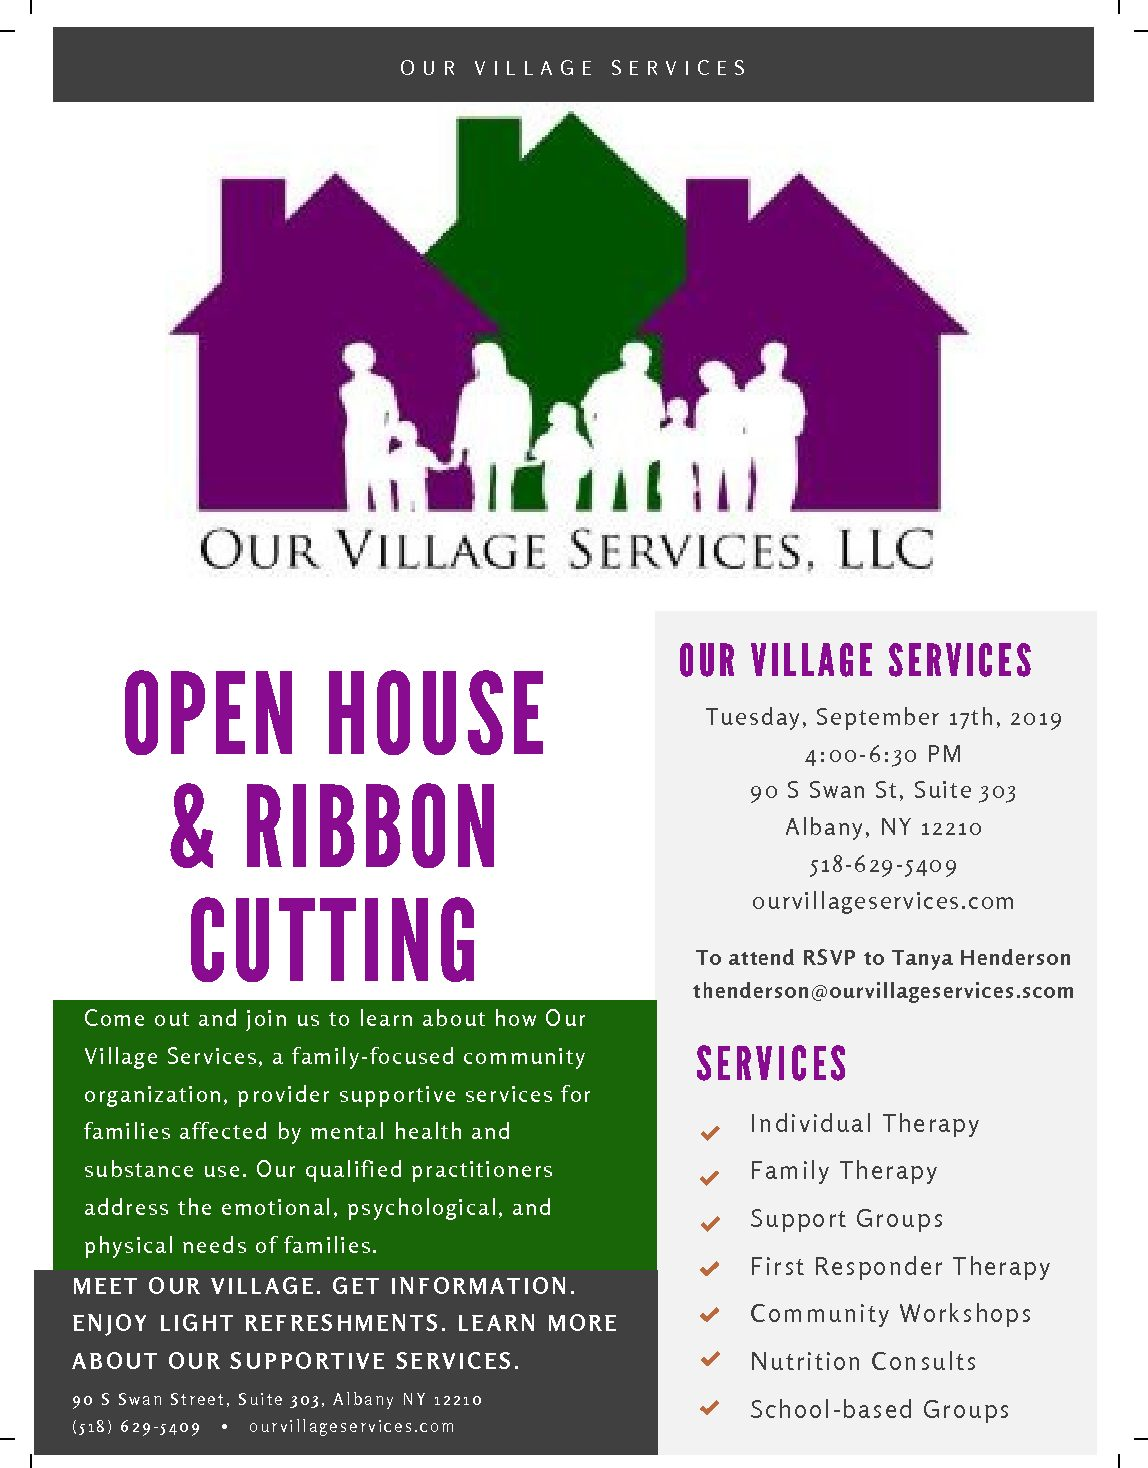 Open House & Ribbon Cutting